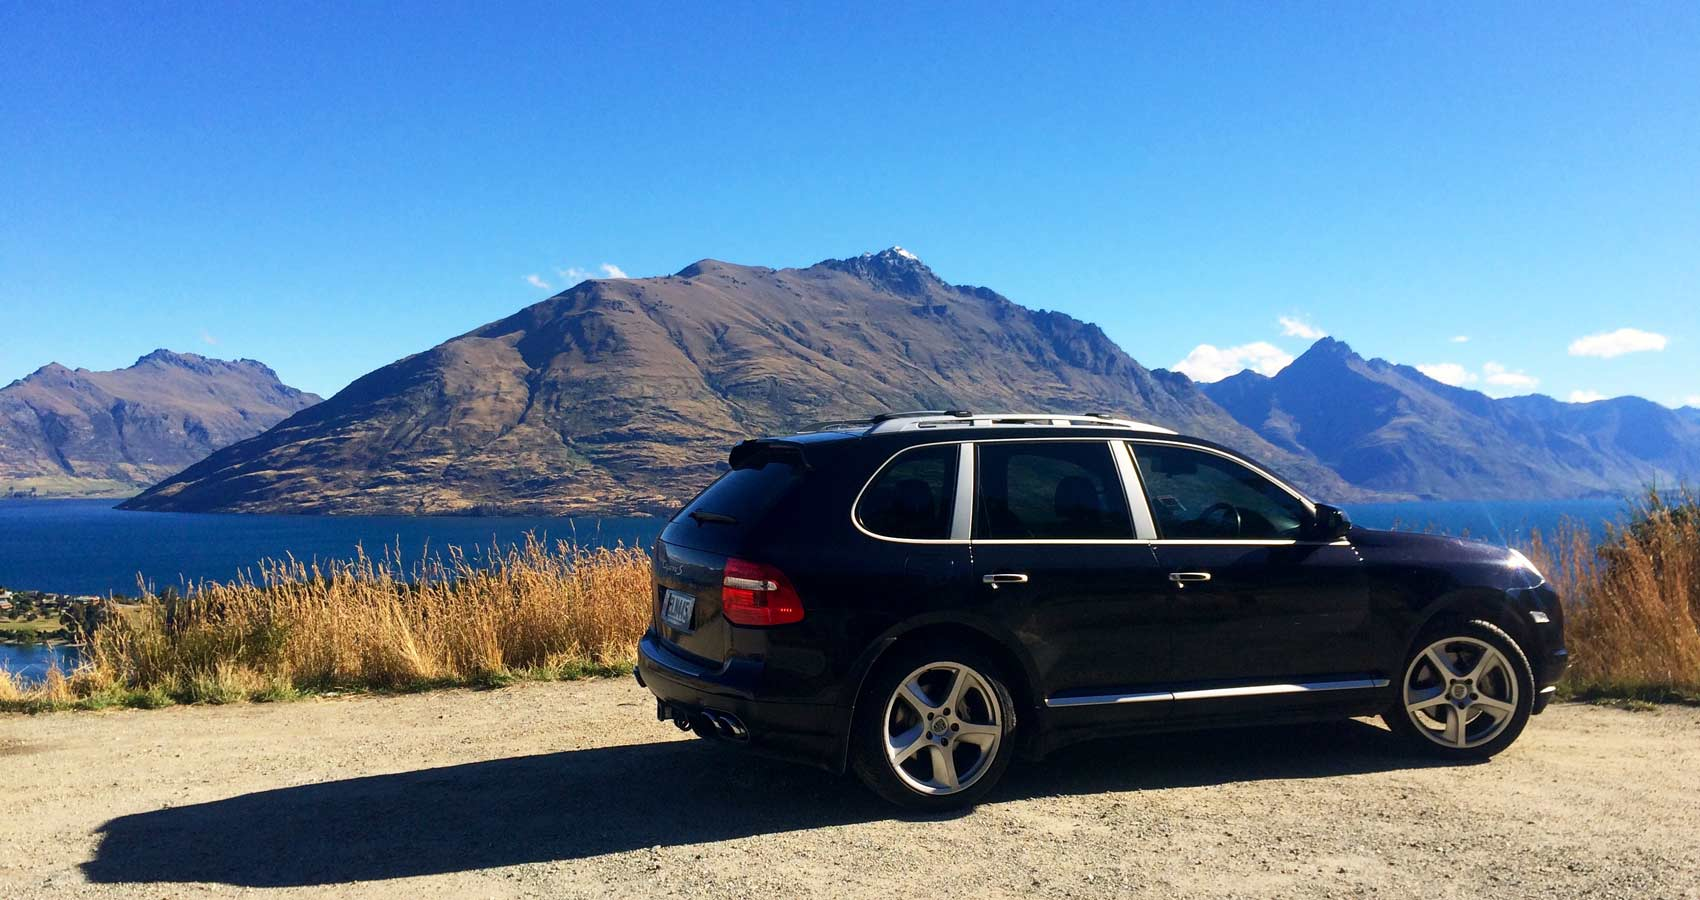 Luxury 4WD SUV hire NZ